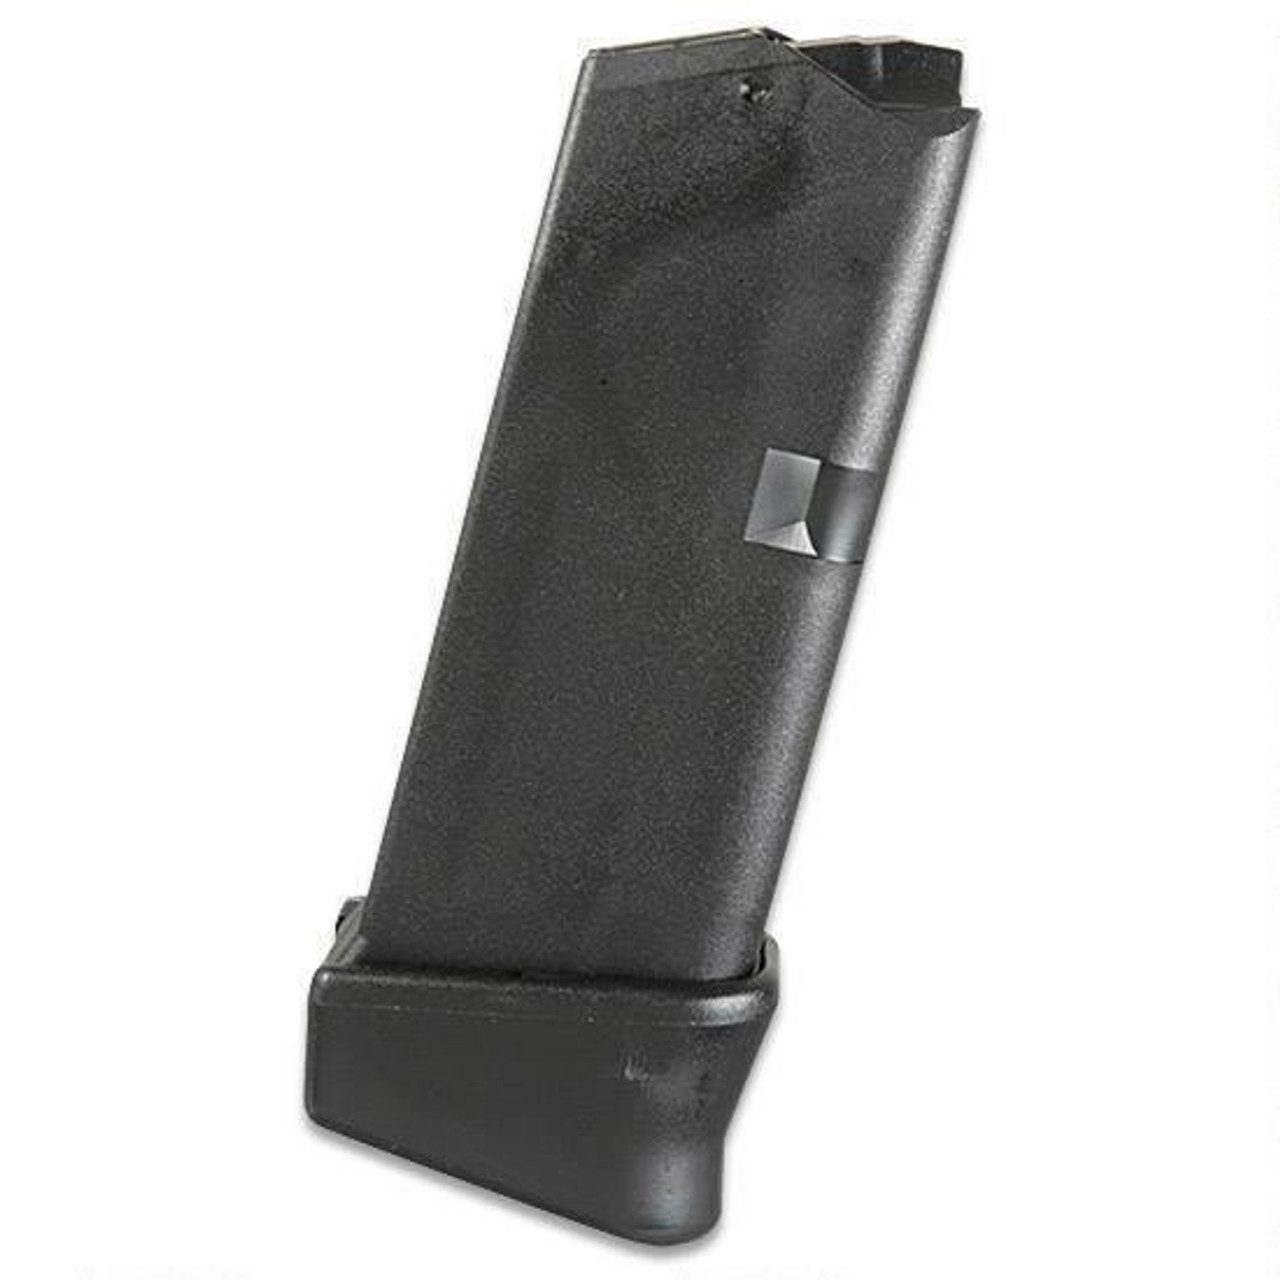 Factory Glock 26 FP 9mm 12 Round Magazine Black MF06781